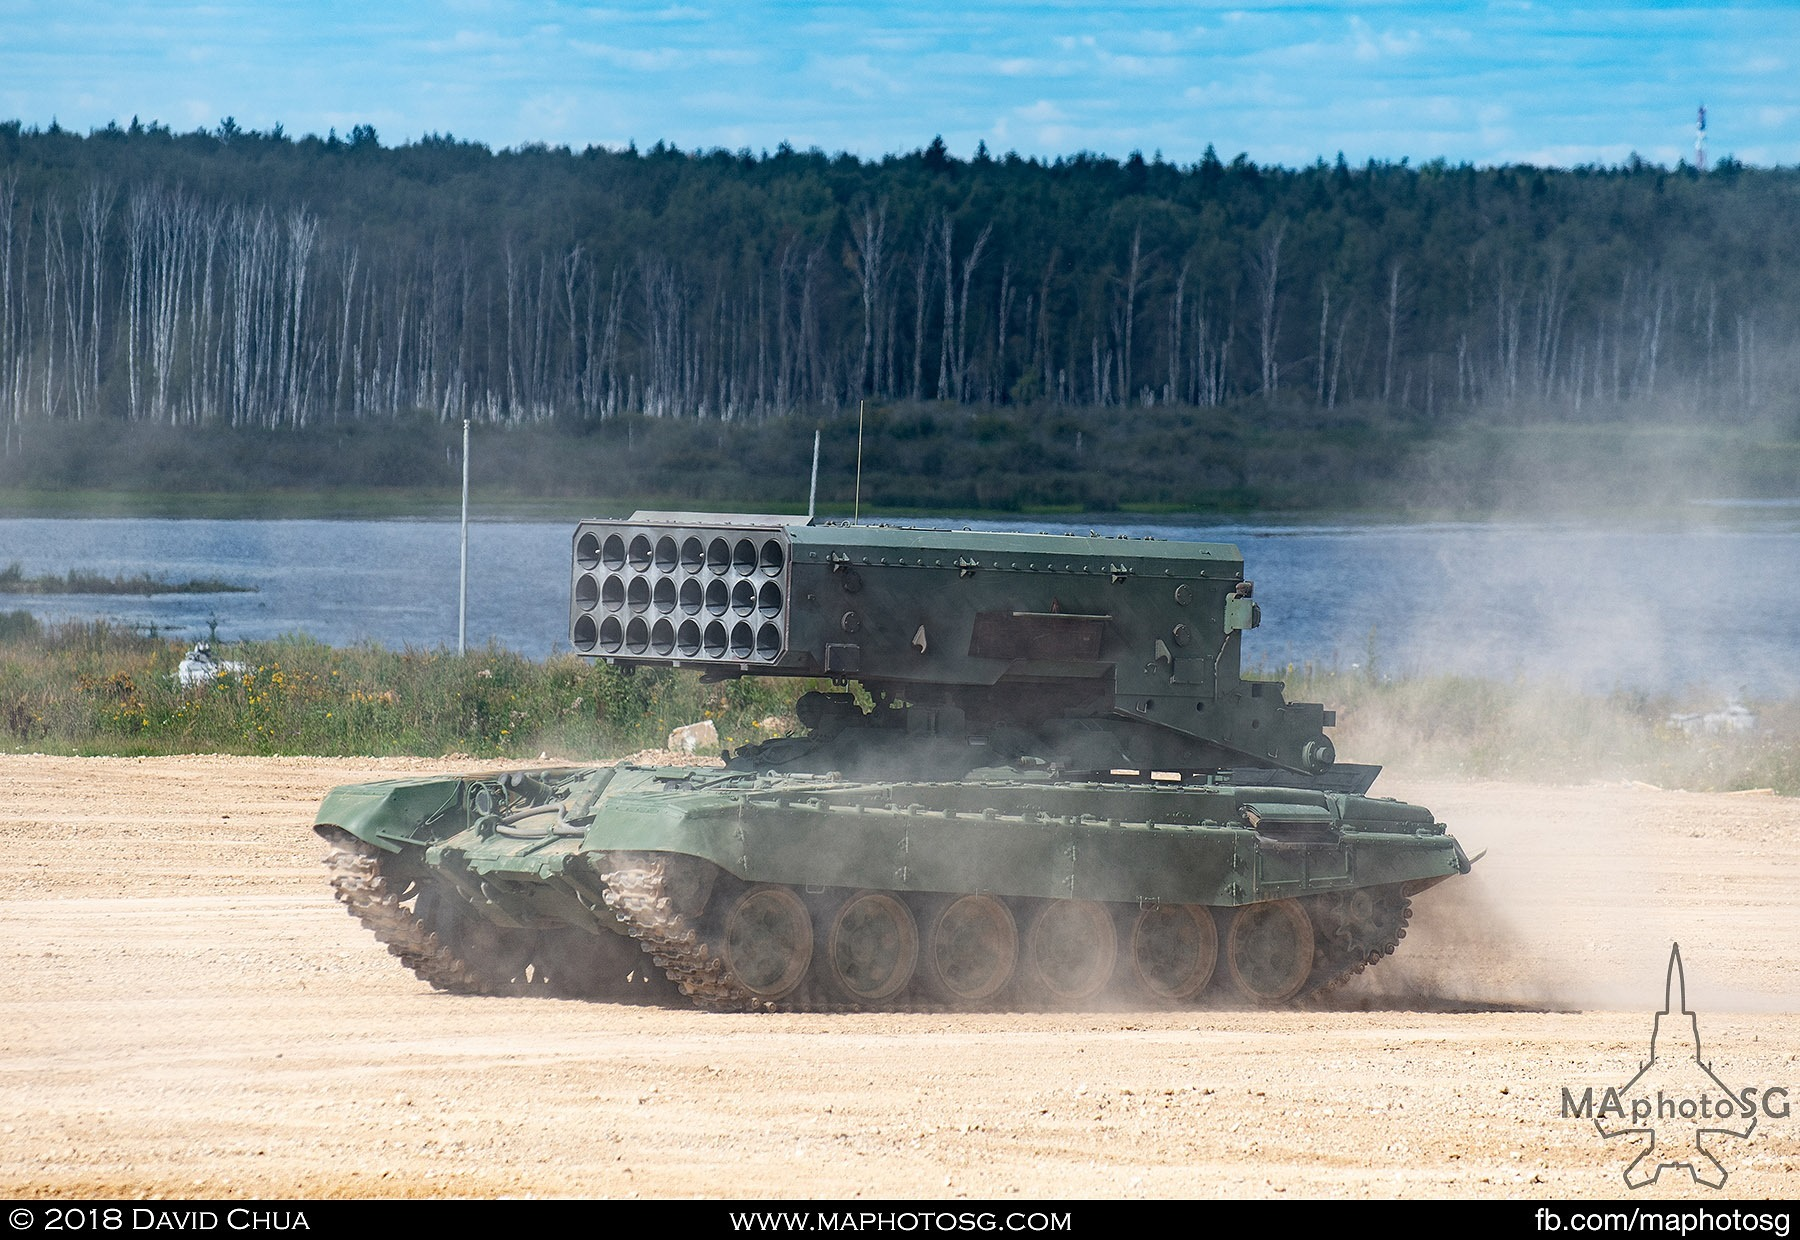 12. TOS-1A Heavy Flame Thrower System moving into position for firing